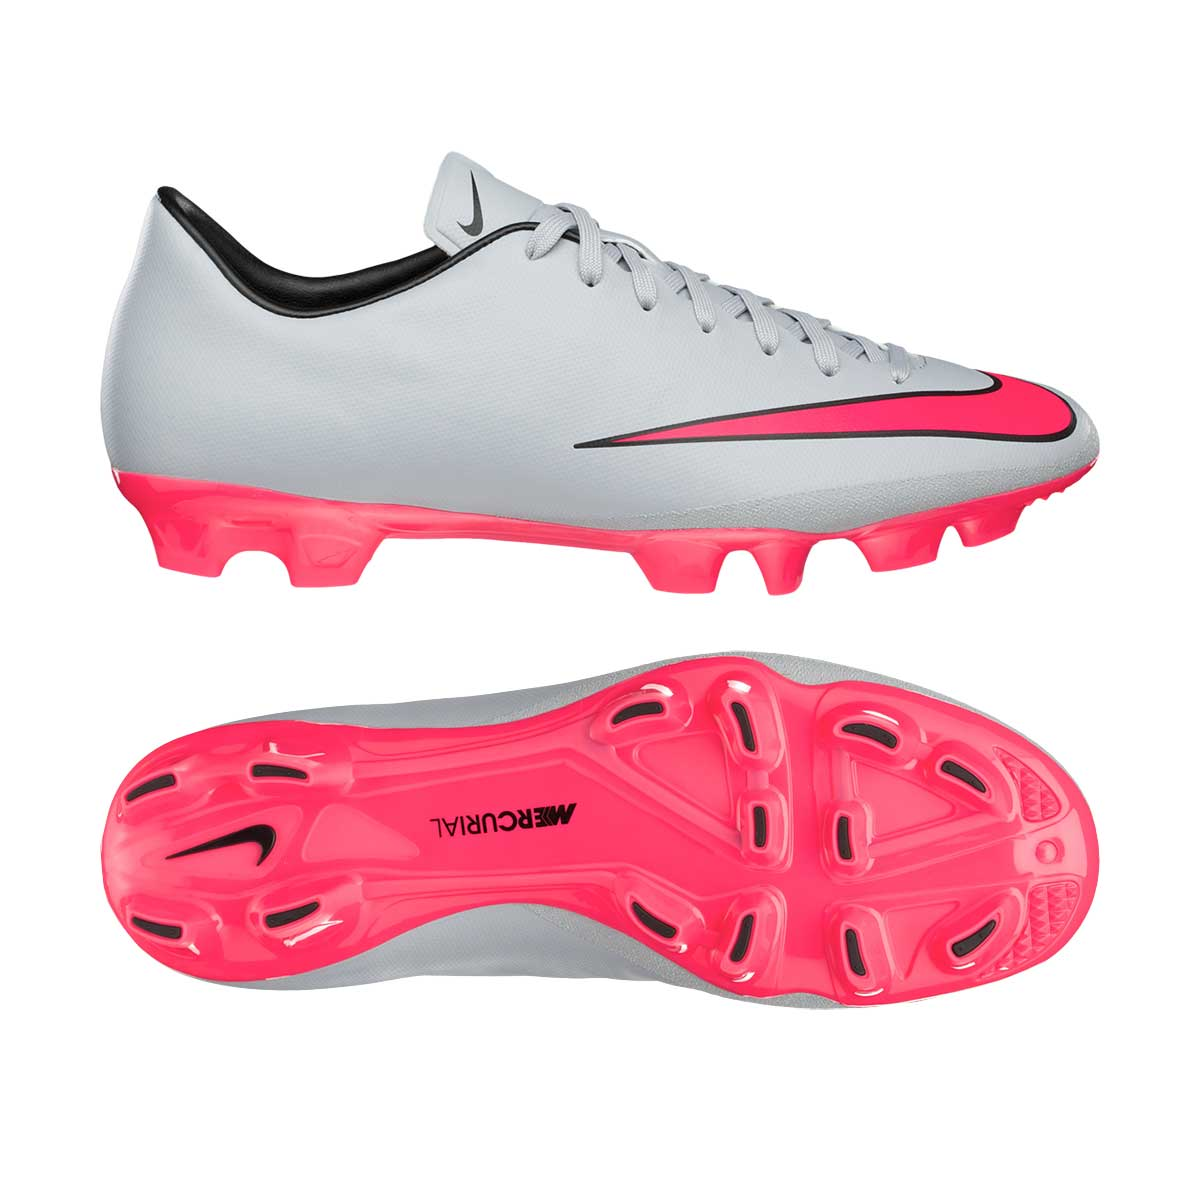 Football Shoes, Football, Sports, Buy, Nike, Nike Mercurial Victory V HG Football  Shoes (Grey/Pink/Bk)